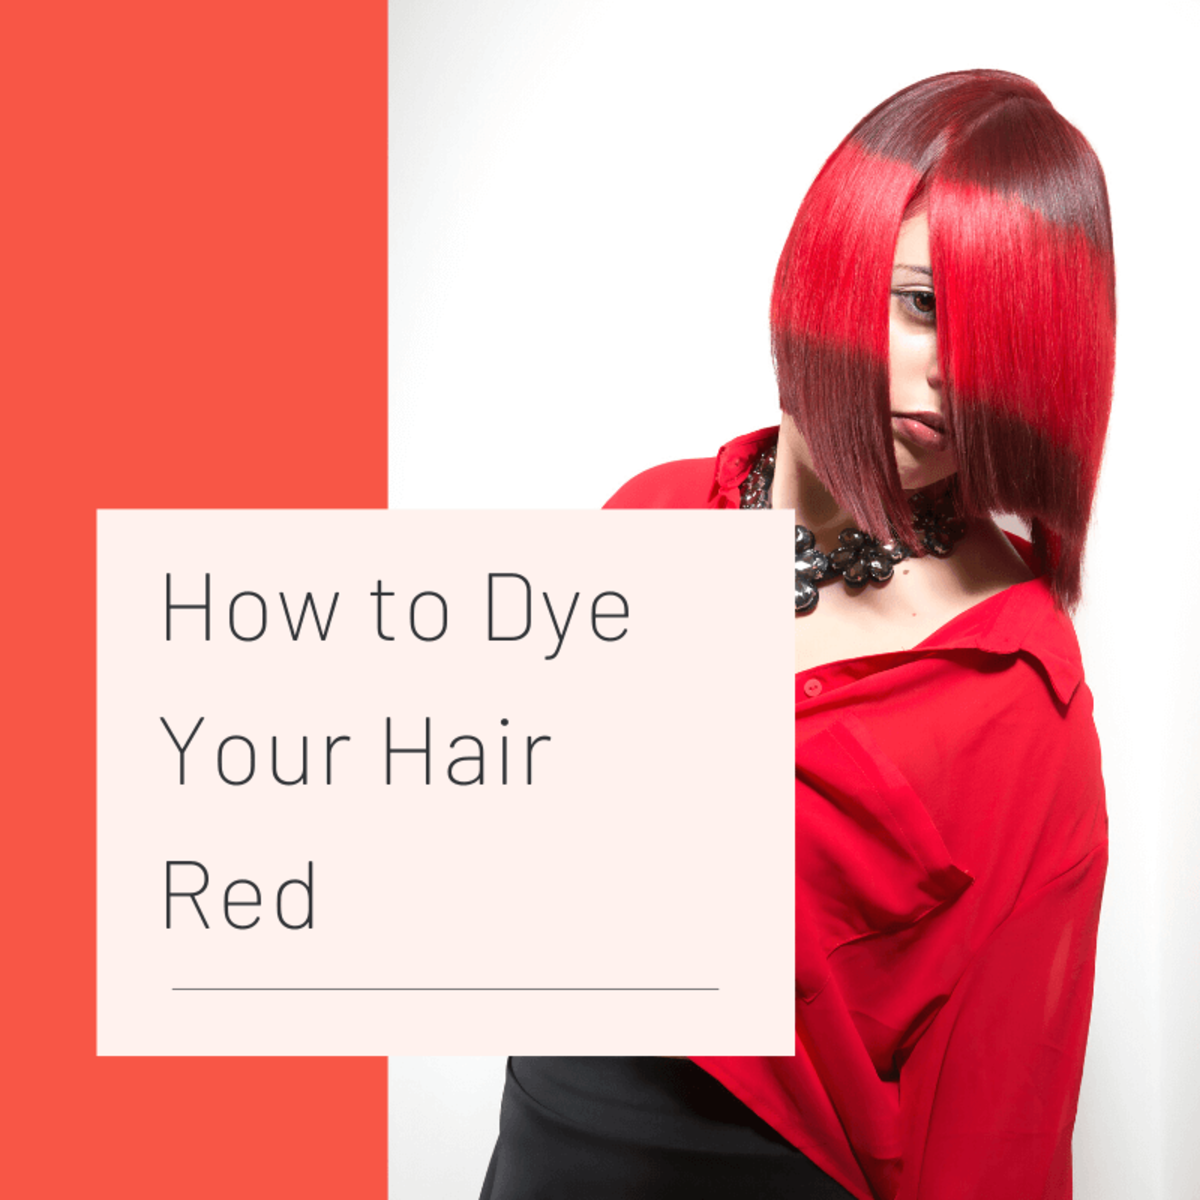 Red hair colors are vibrant and interesting, but dyeing it can be tricky. Read on to learn how to do it right.